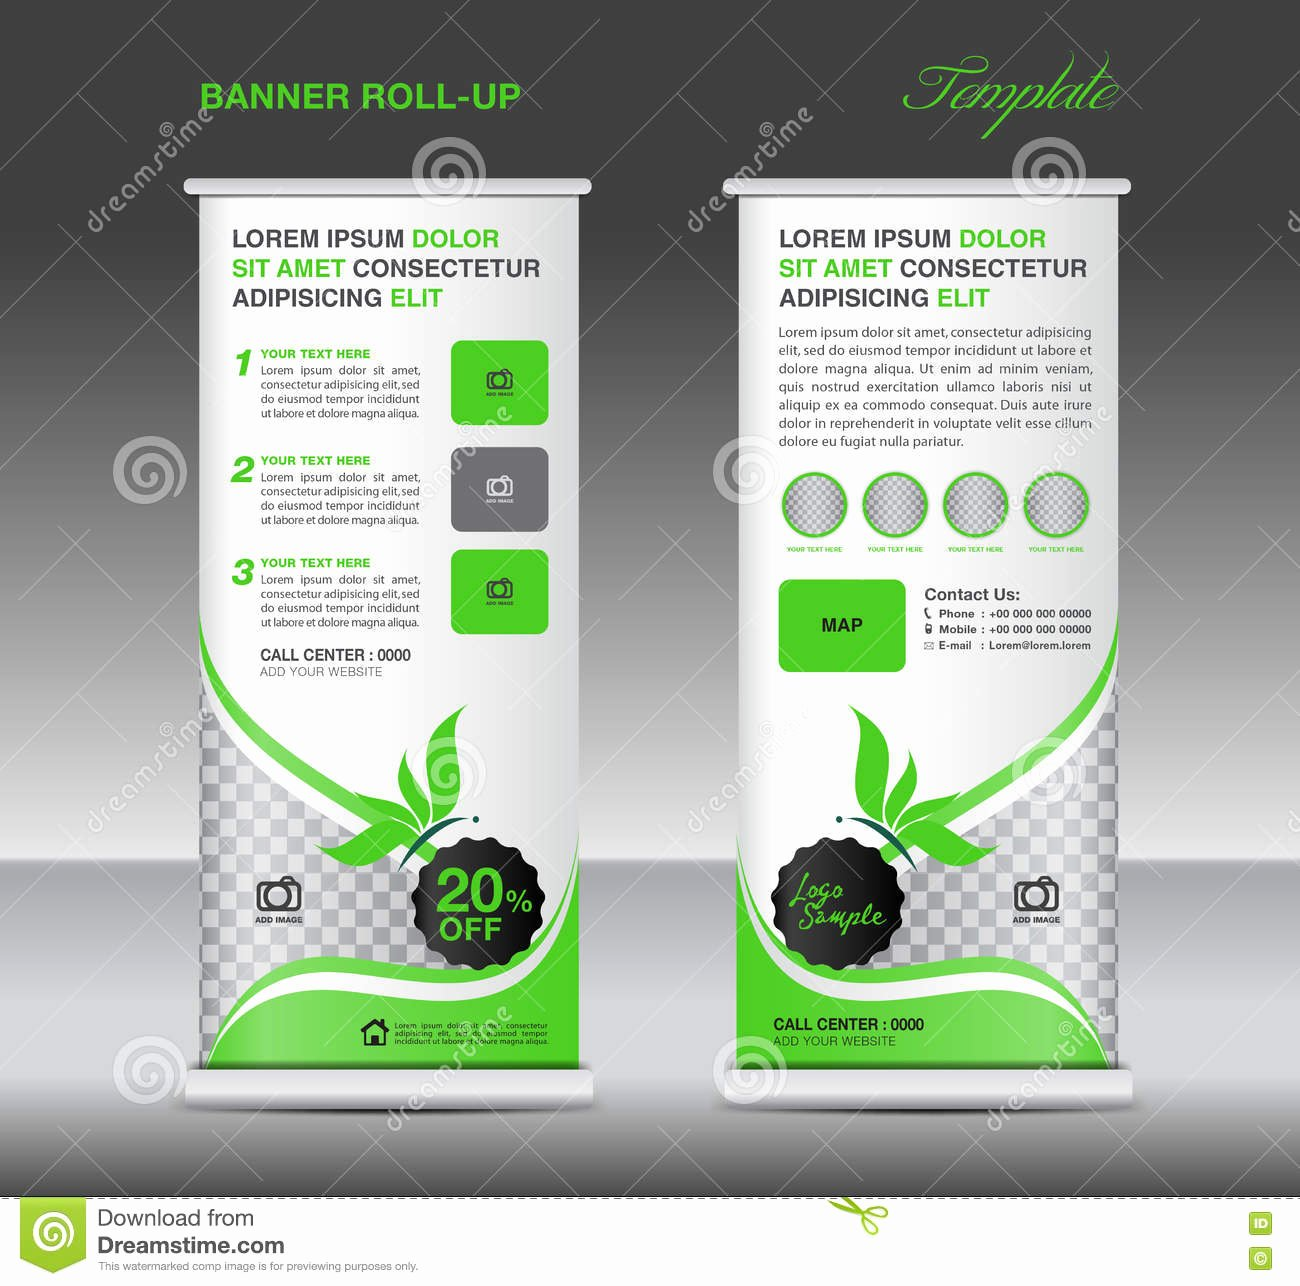 Pull Up Banner Template Awesome Green Roll Up Banner Stand Template Banner Design Stock